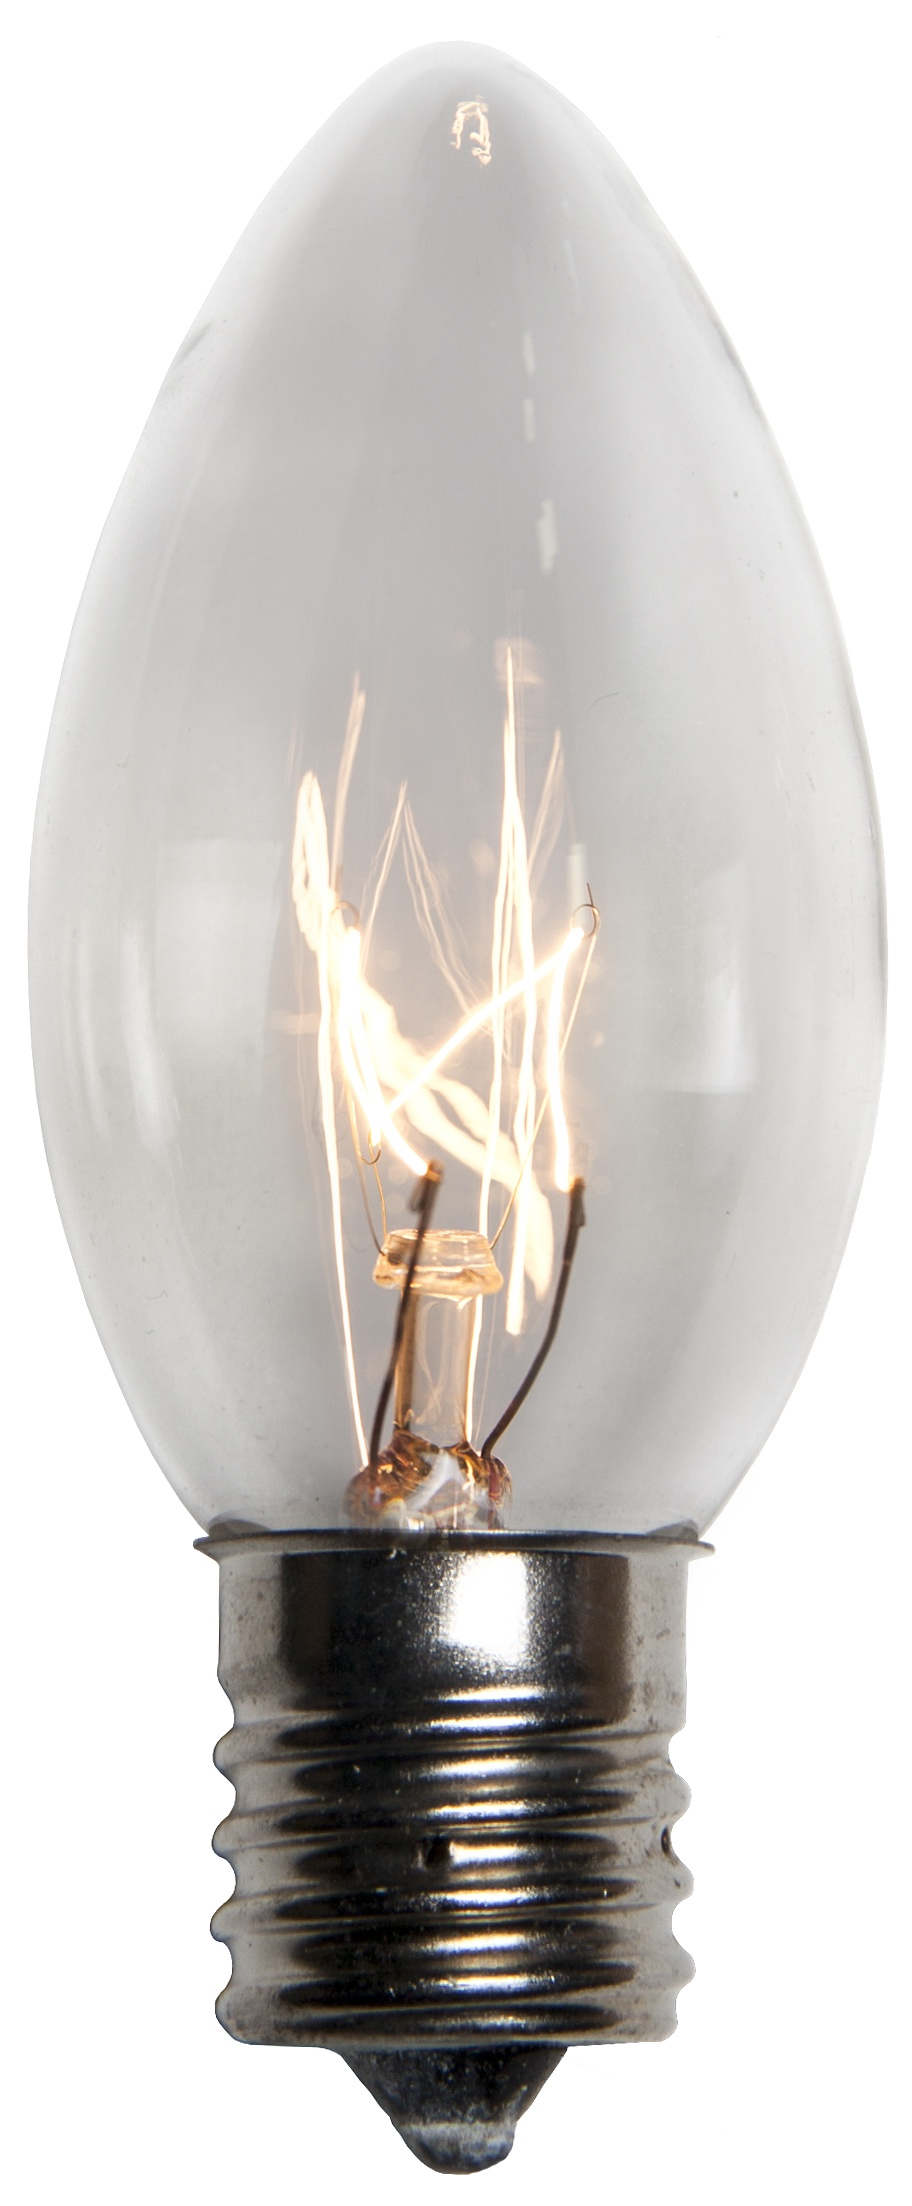 C9 Clear Transparent Incandescent Bulb